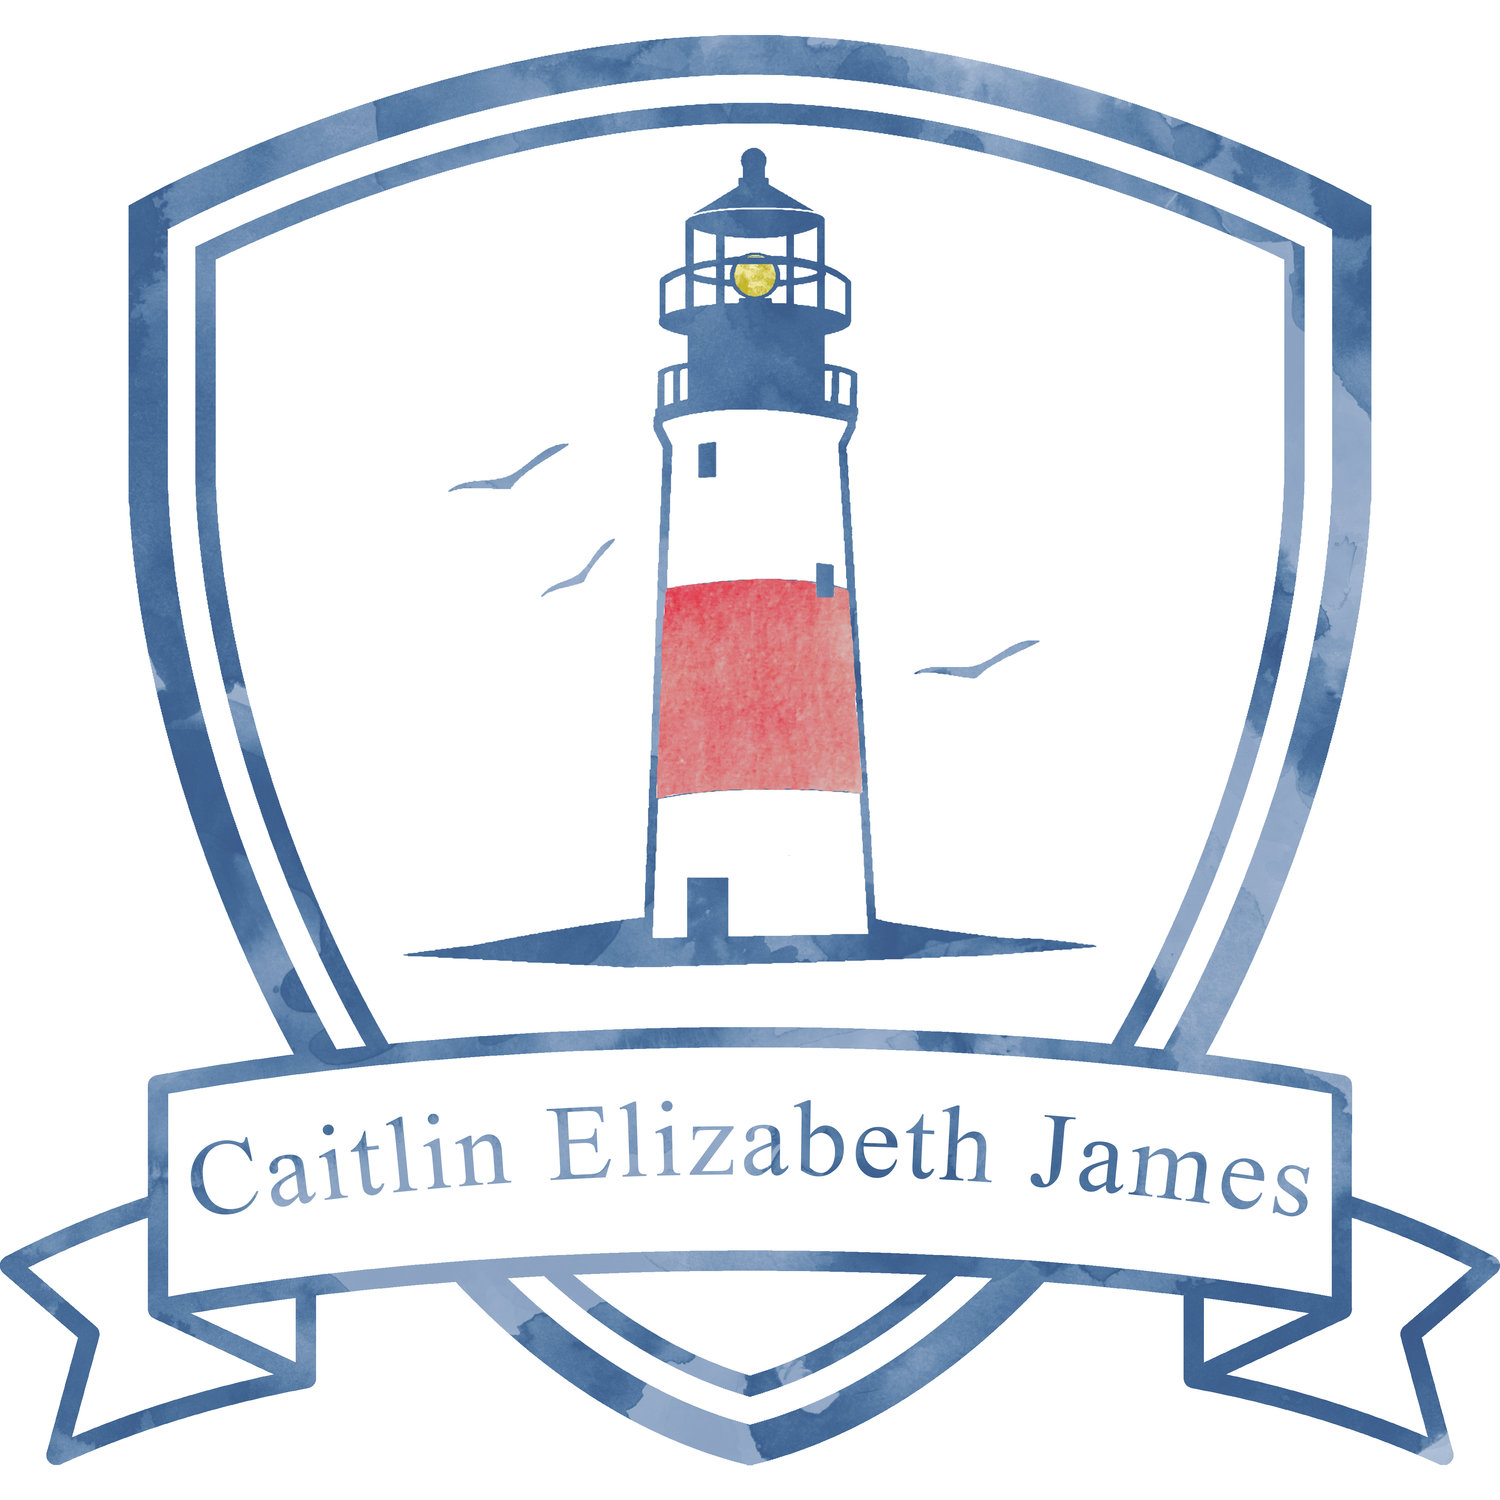 Caitlin Elizabeth James